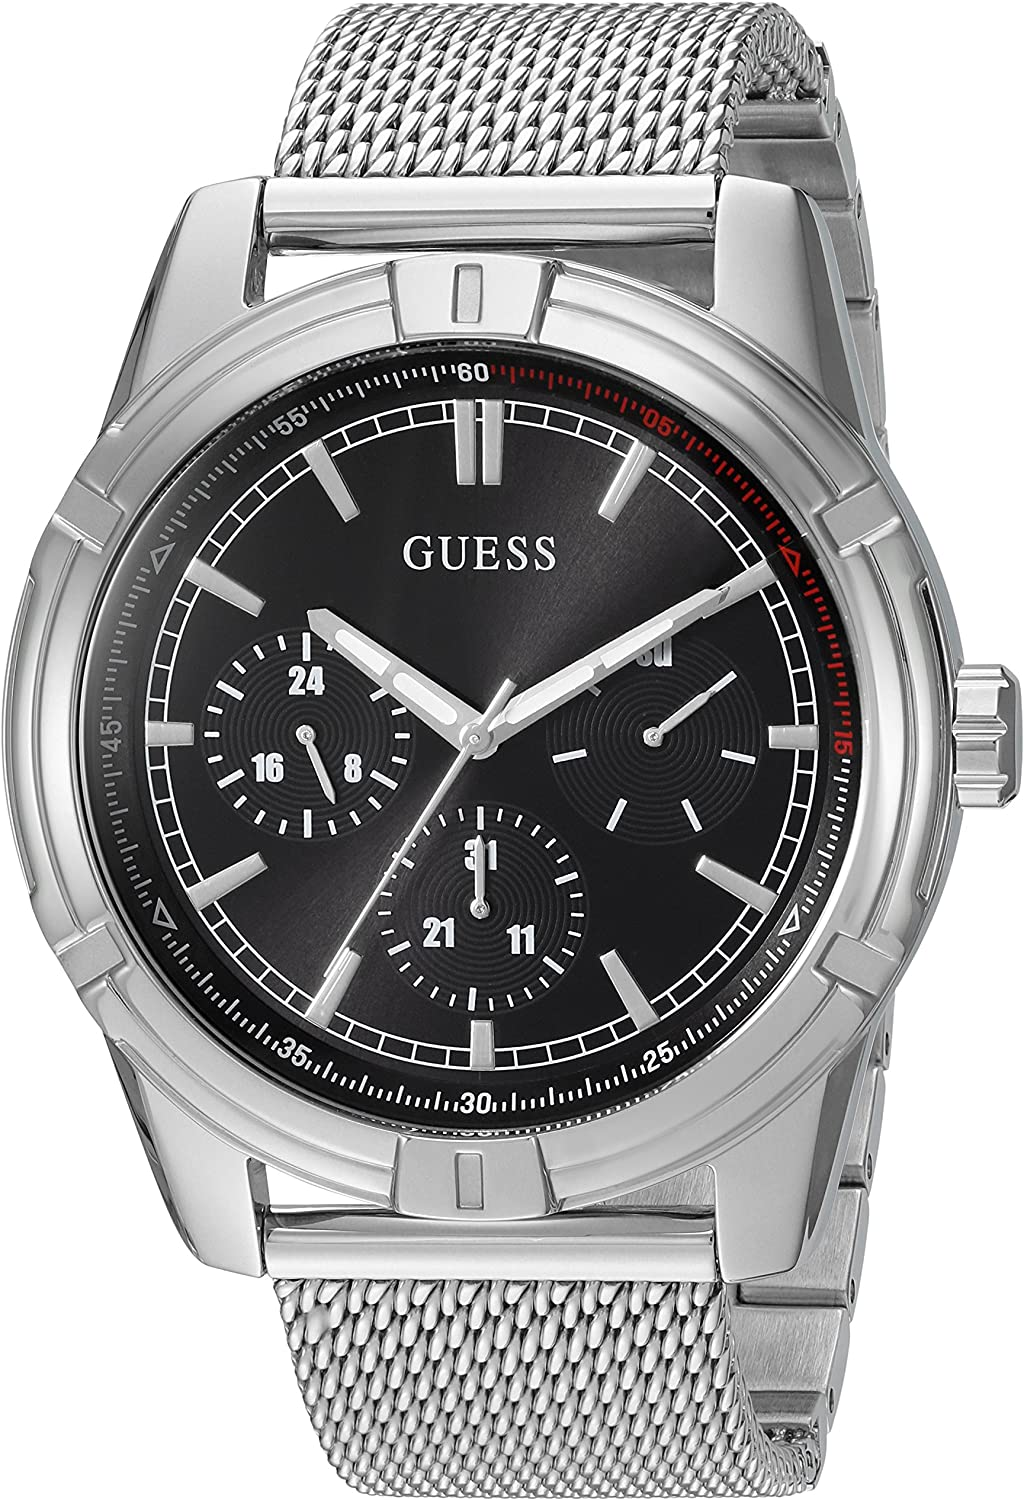 GUESS Men s Quartz Watch with Stainless-Steel Strap, Silver, 22 Model U0965G1